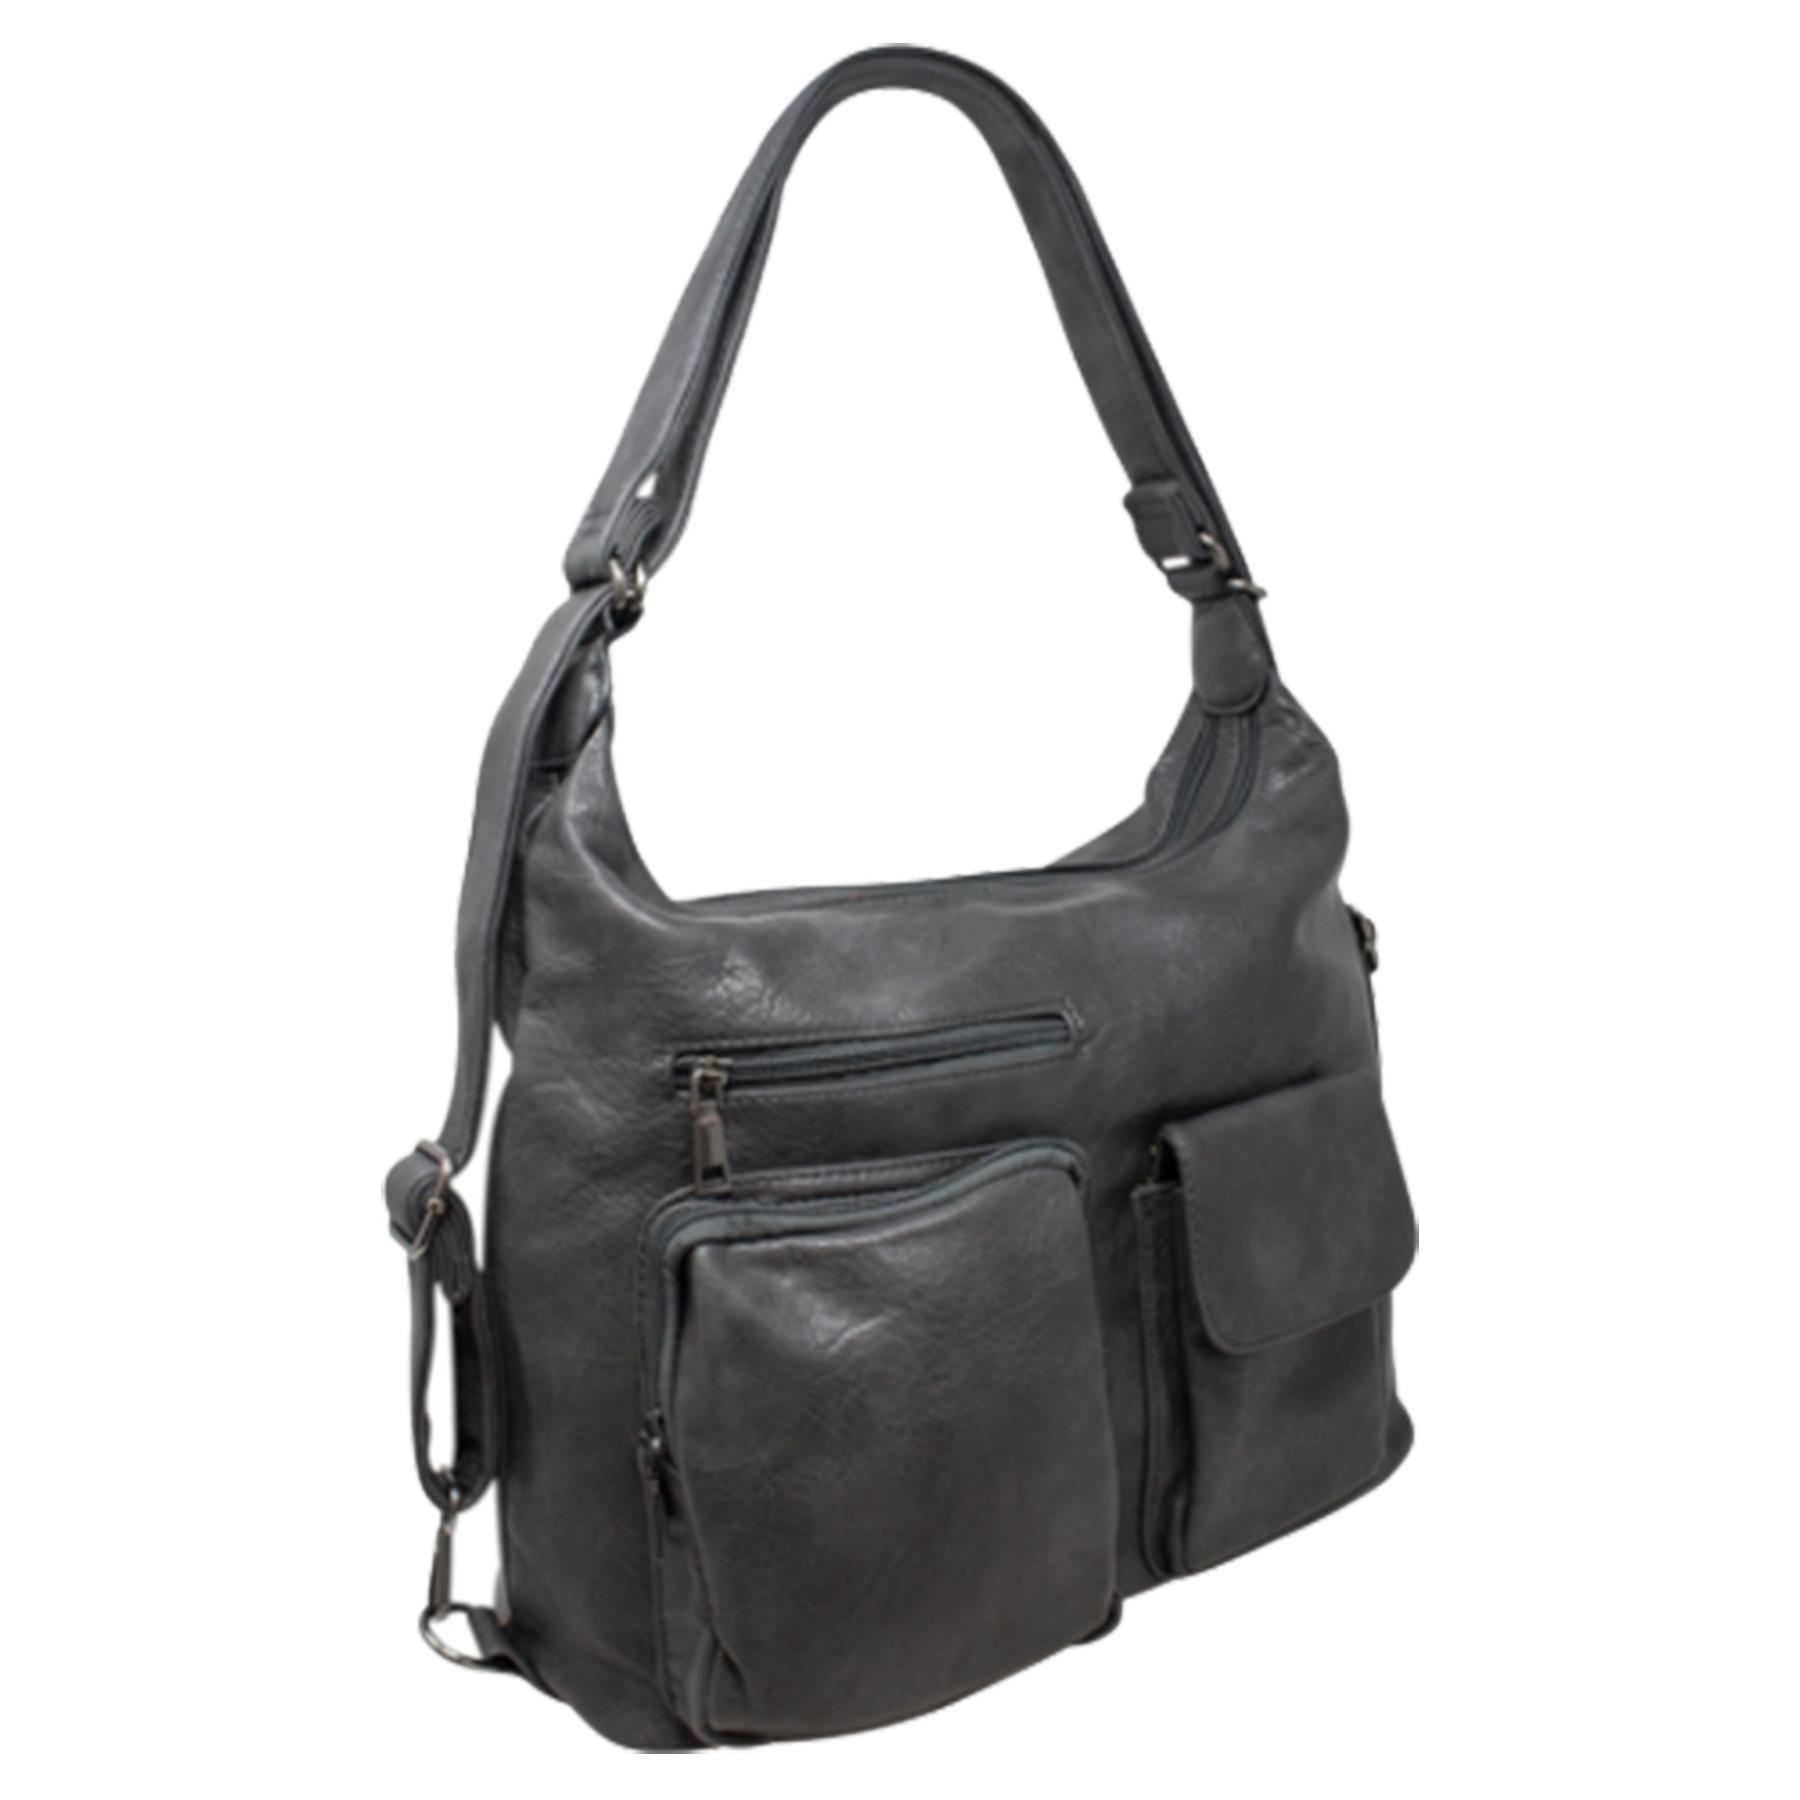 New-Women-s-Men-s-Faux-Leather-Multi-Purpose-Crossbody-Messenger-Bag thumbnail 19